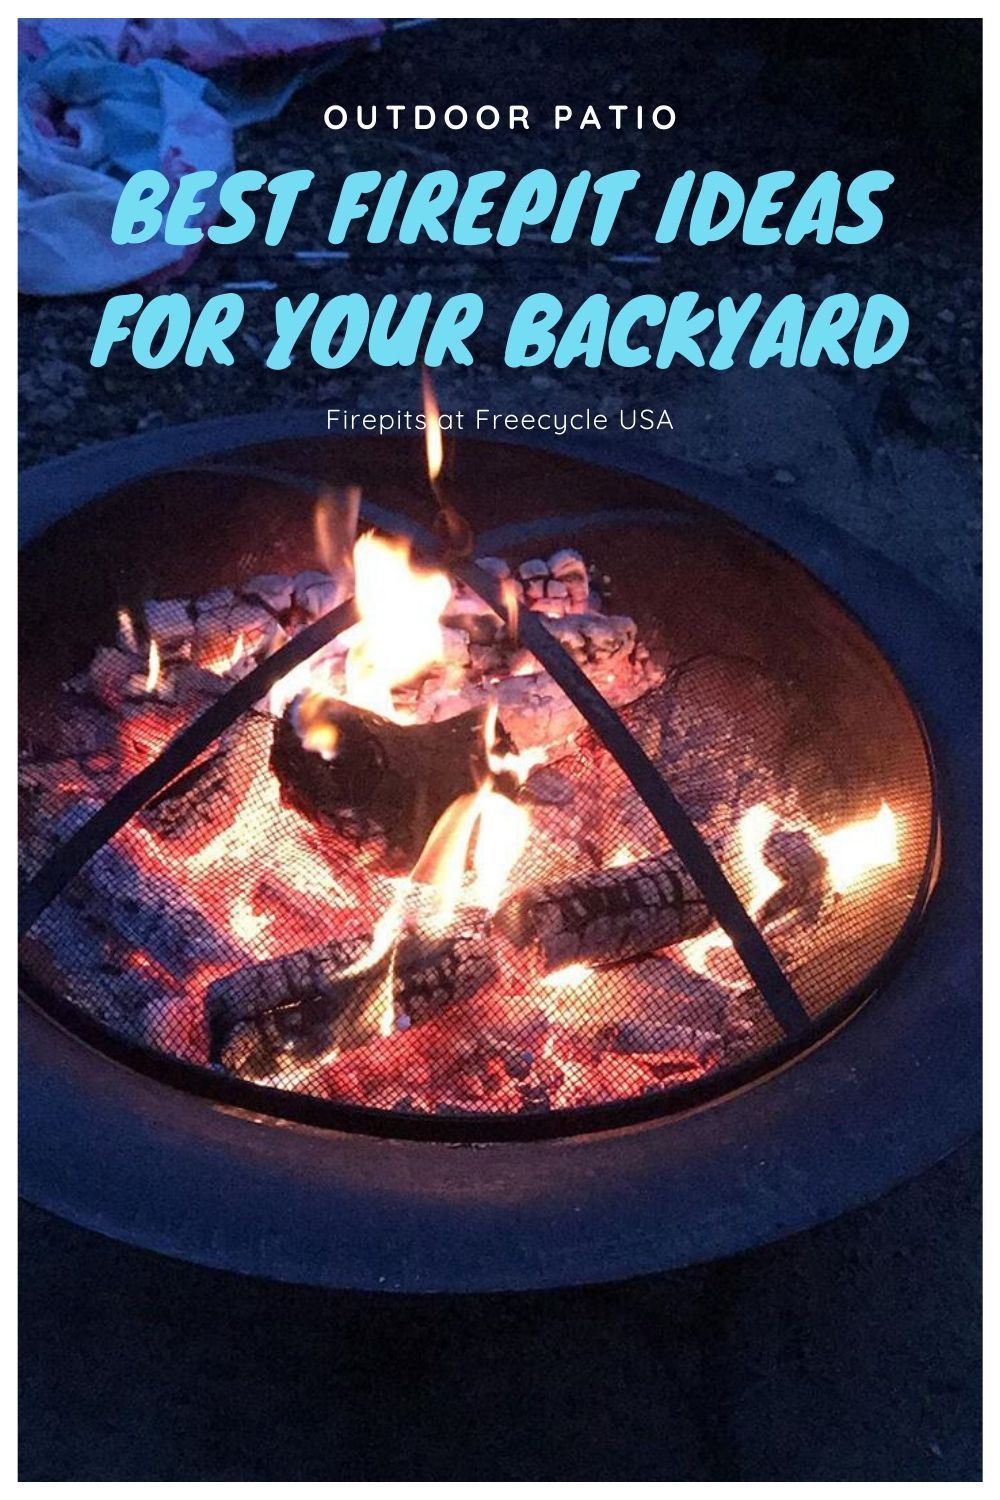 The Best DIY Fire Pit For Your Backyard - FREECYCLE USA in ...